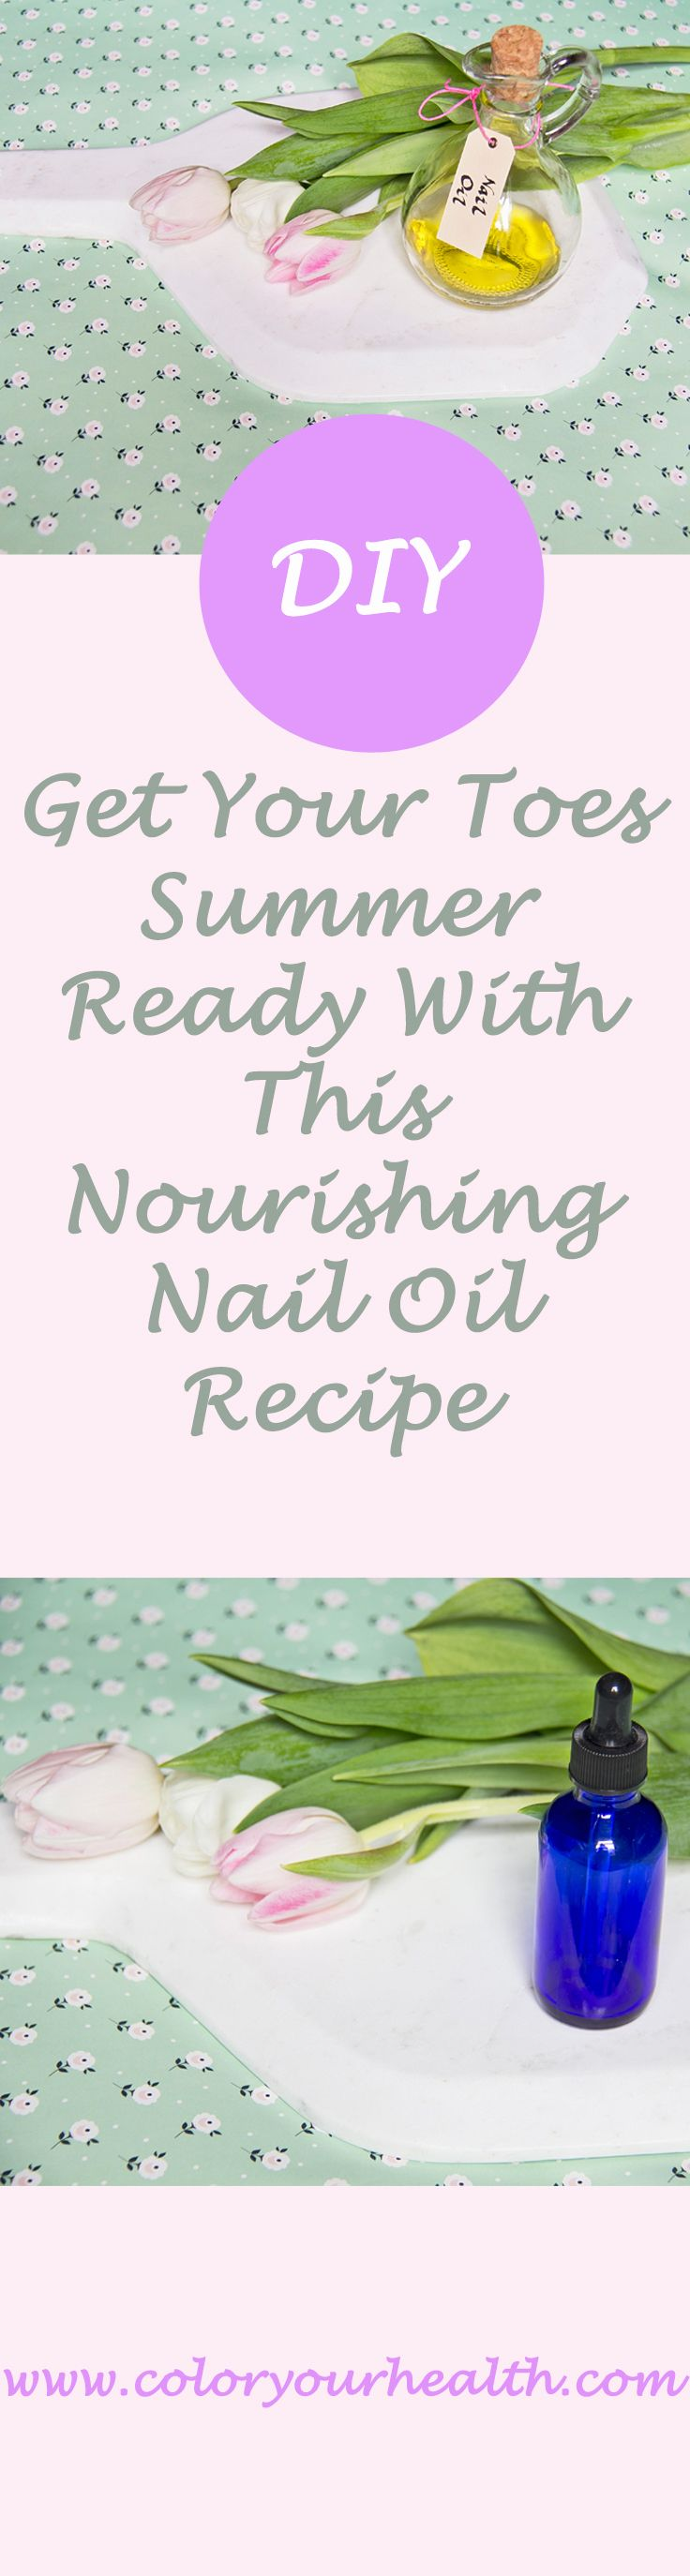 Get Your Toes Summer Ready With This Nourishing Nail Oil